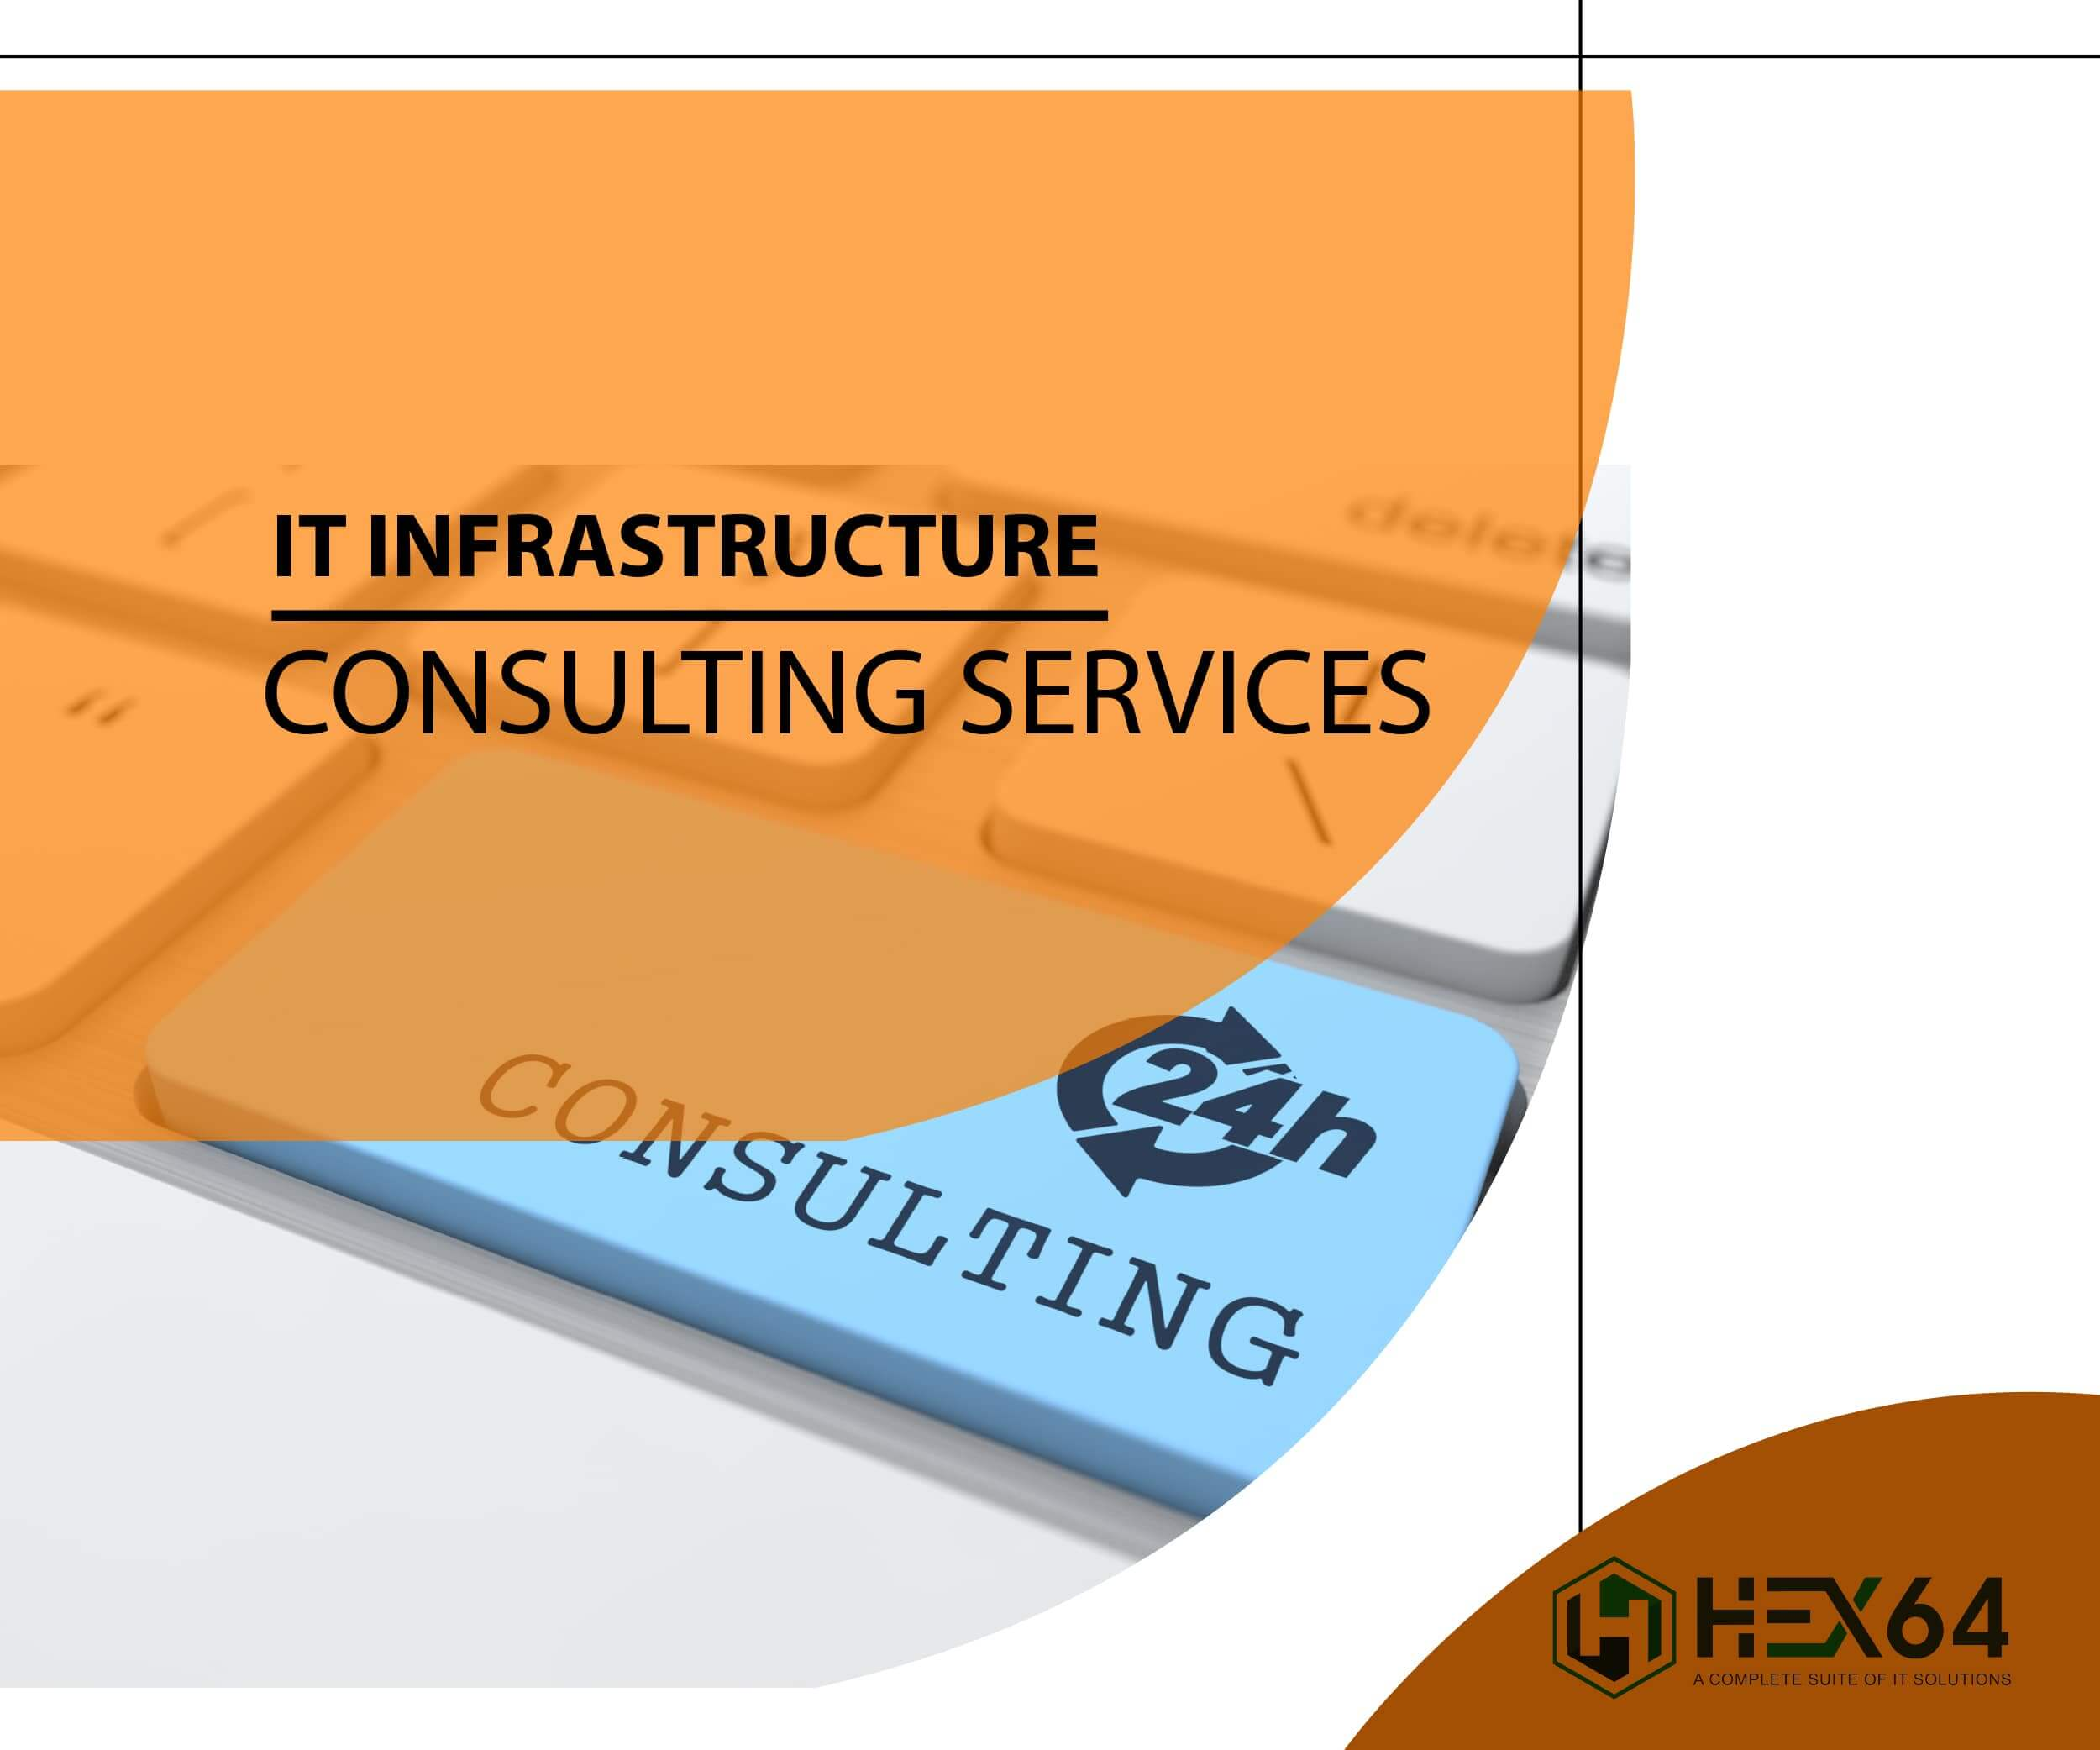 Hybrid IT Infrastructure Consulting